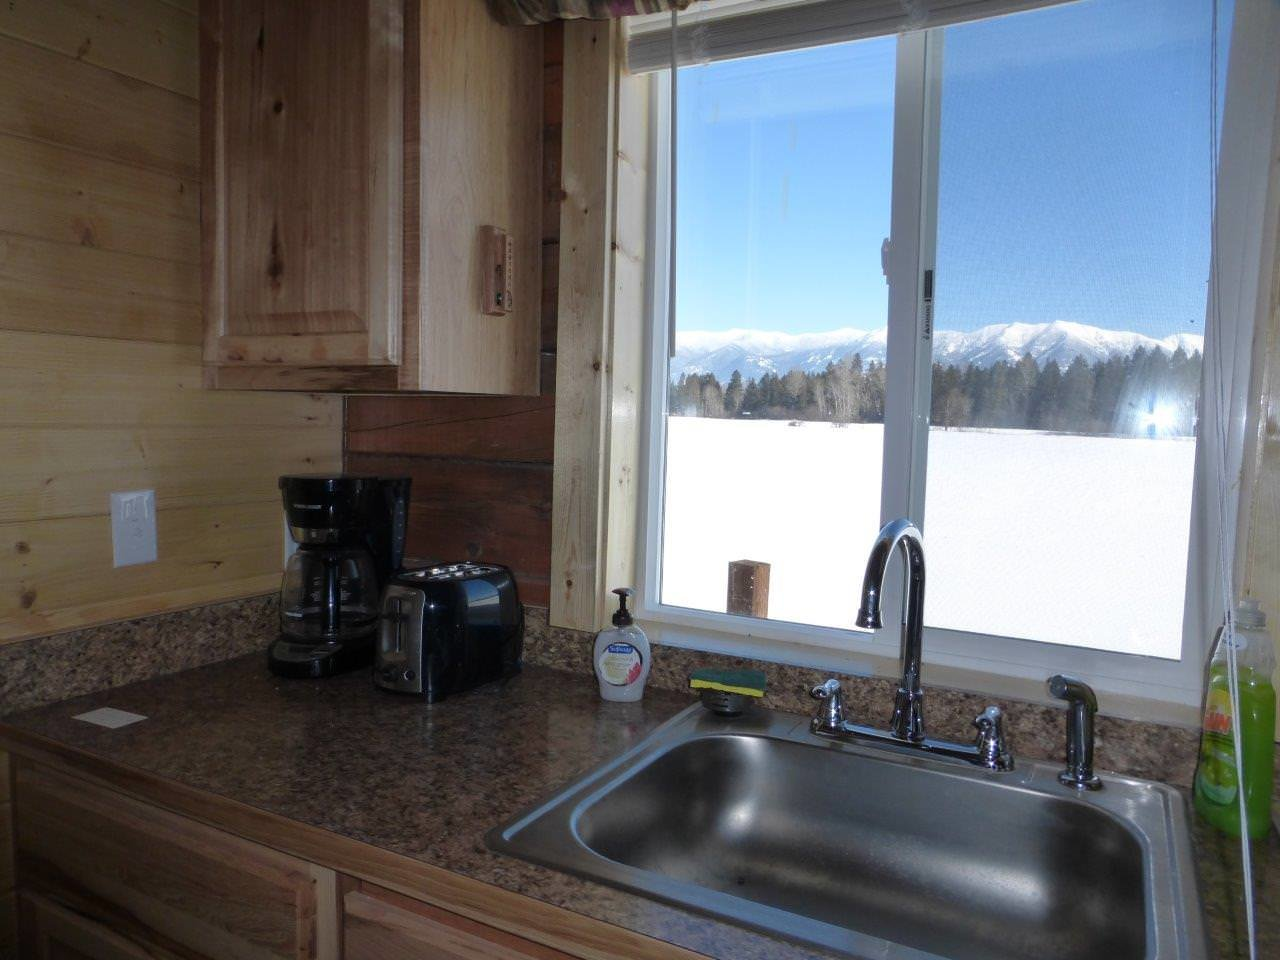 Sperry cabin kitchen overlooking mountains through window.